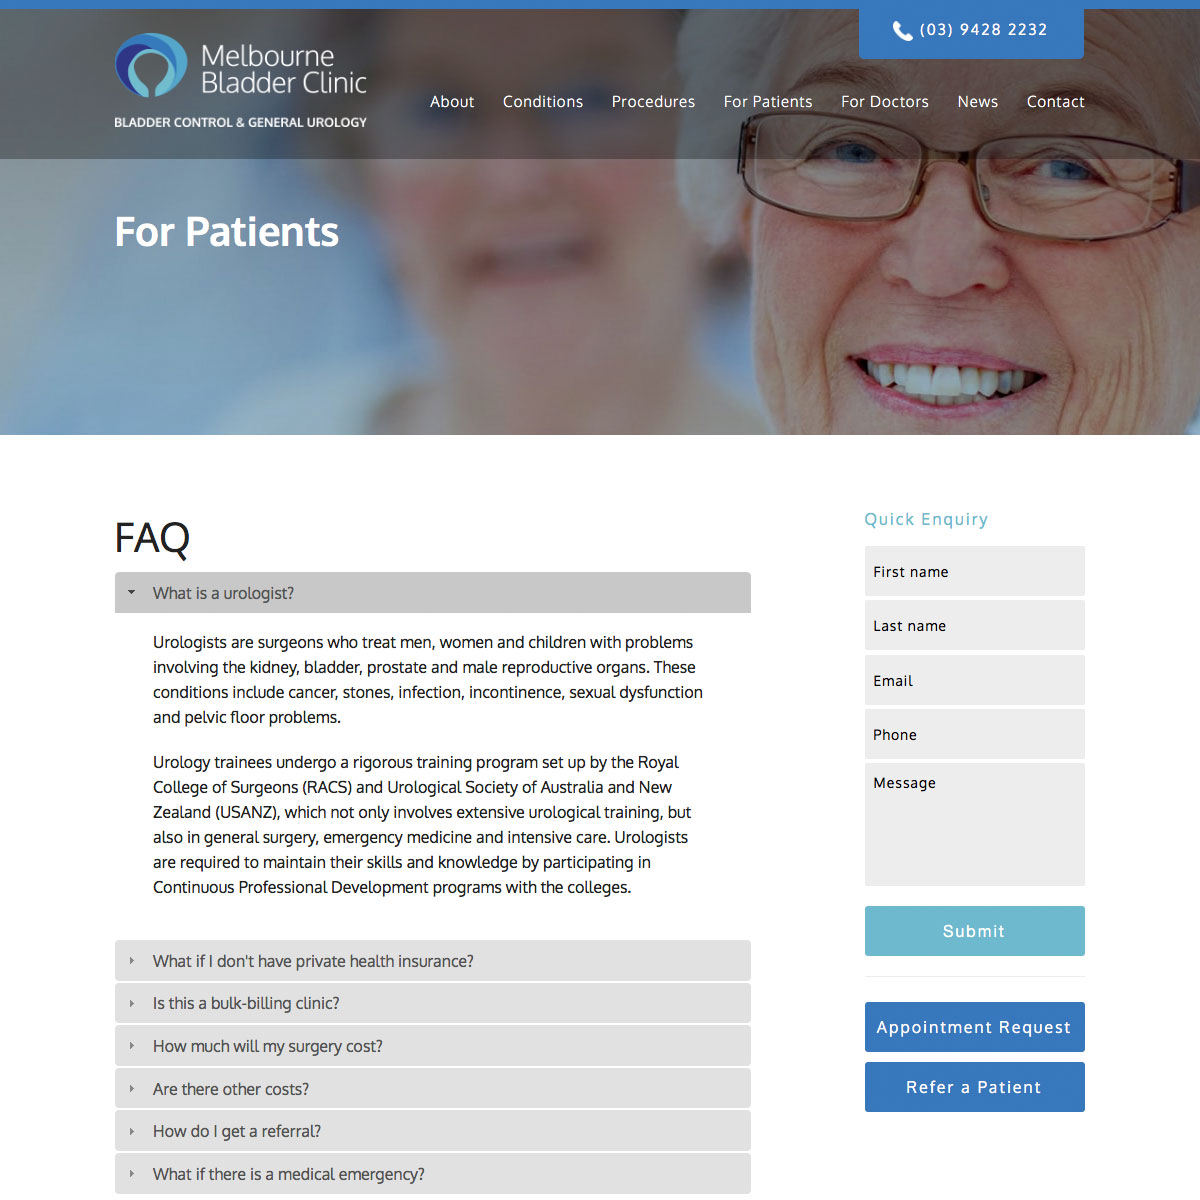 Melbourne Bladder Clinic Frequently Asked Questions